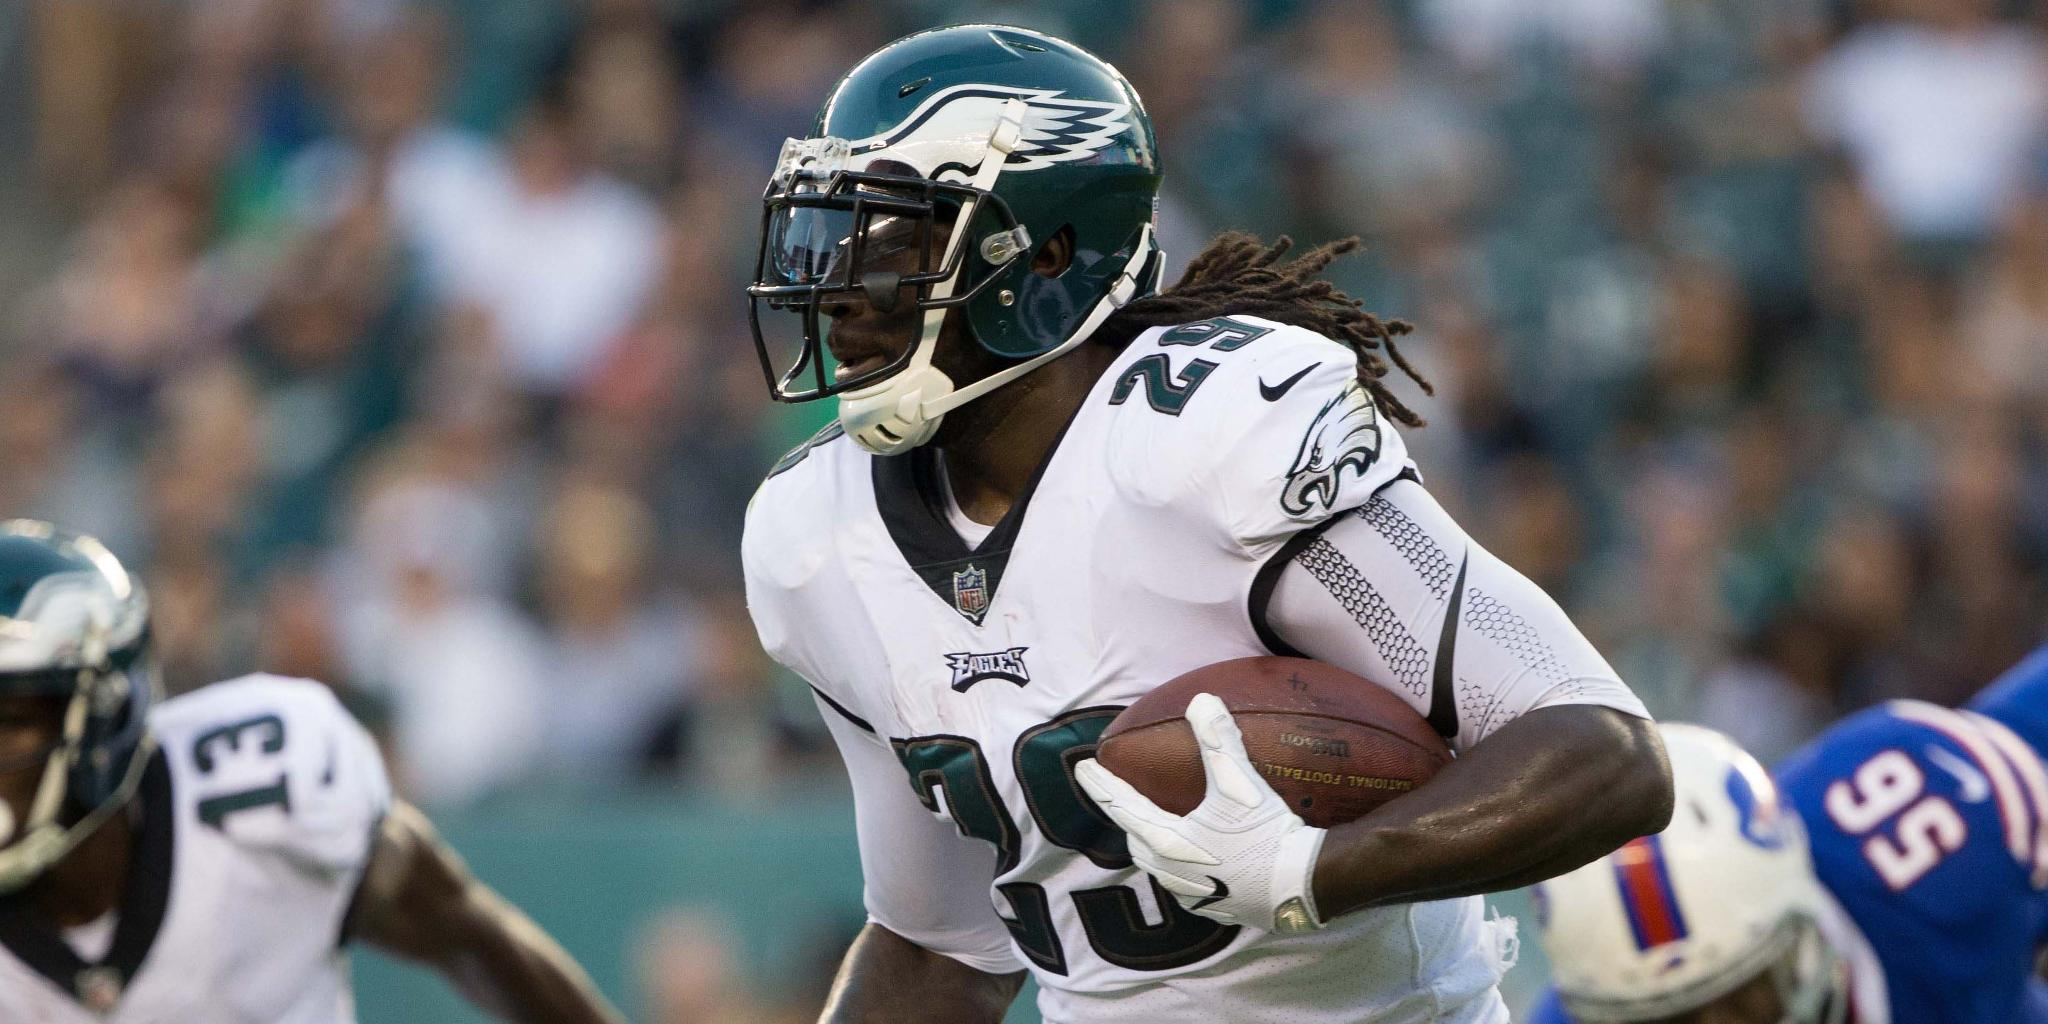 How will the Eagles use Blount? https://t.co/iPHDKOmnLo https://t.co/qijjWYCSXZ